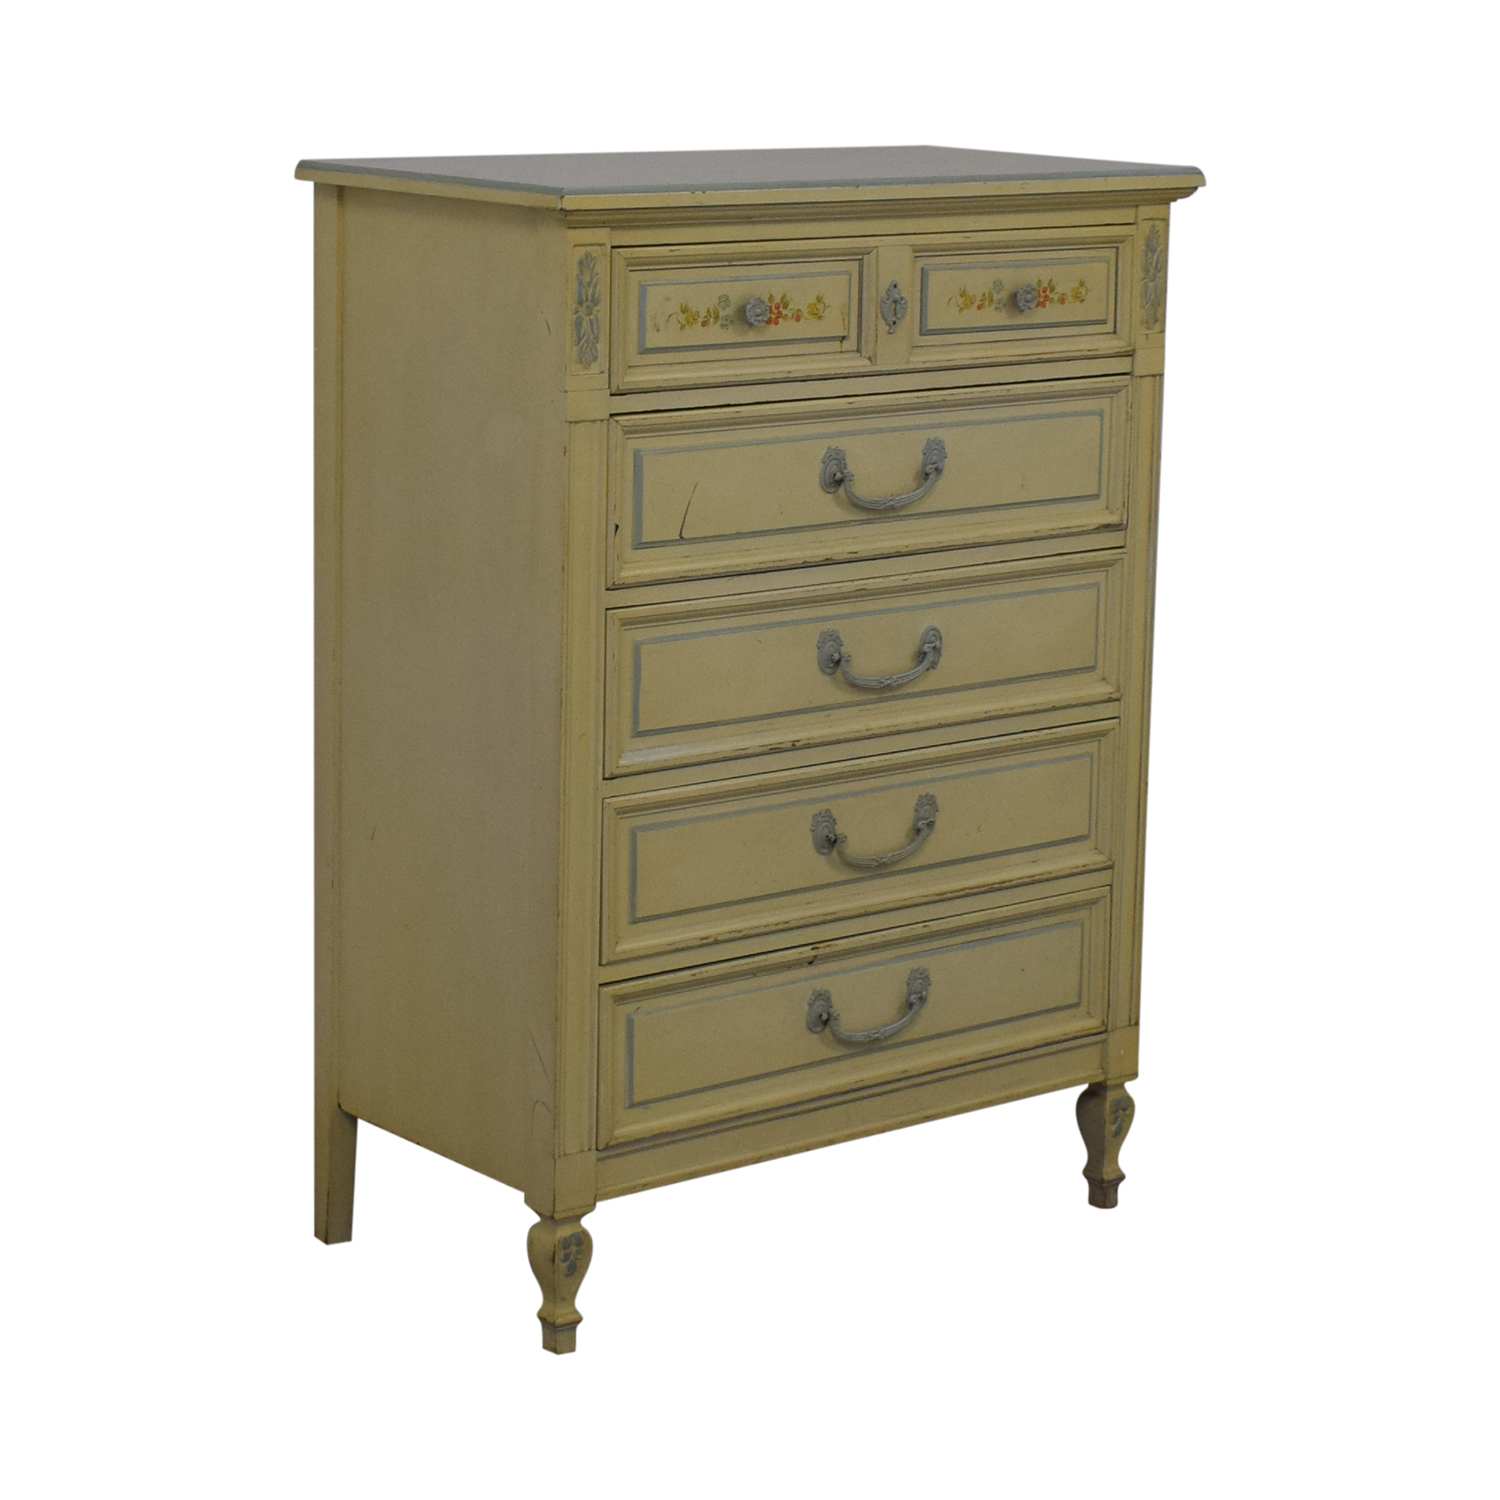 Dixie Furniture Company Dixie Furniture Company Victorian Five-Drawer Dresser Cream